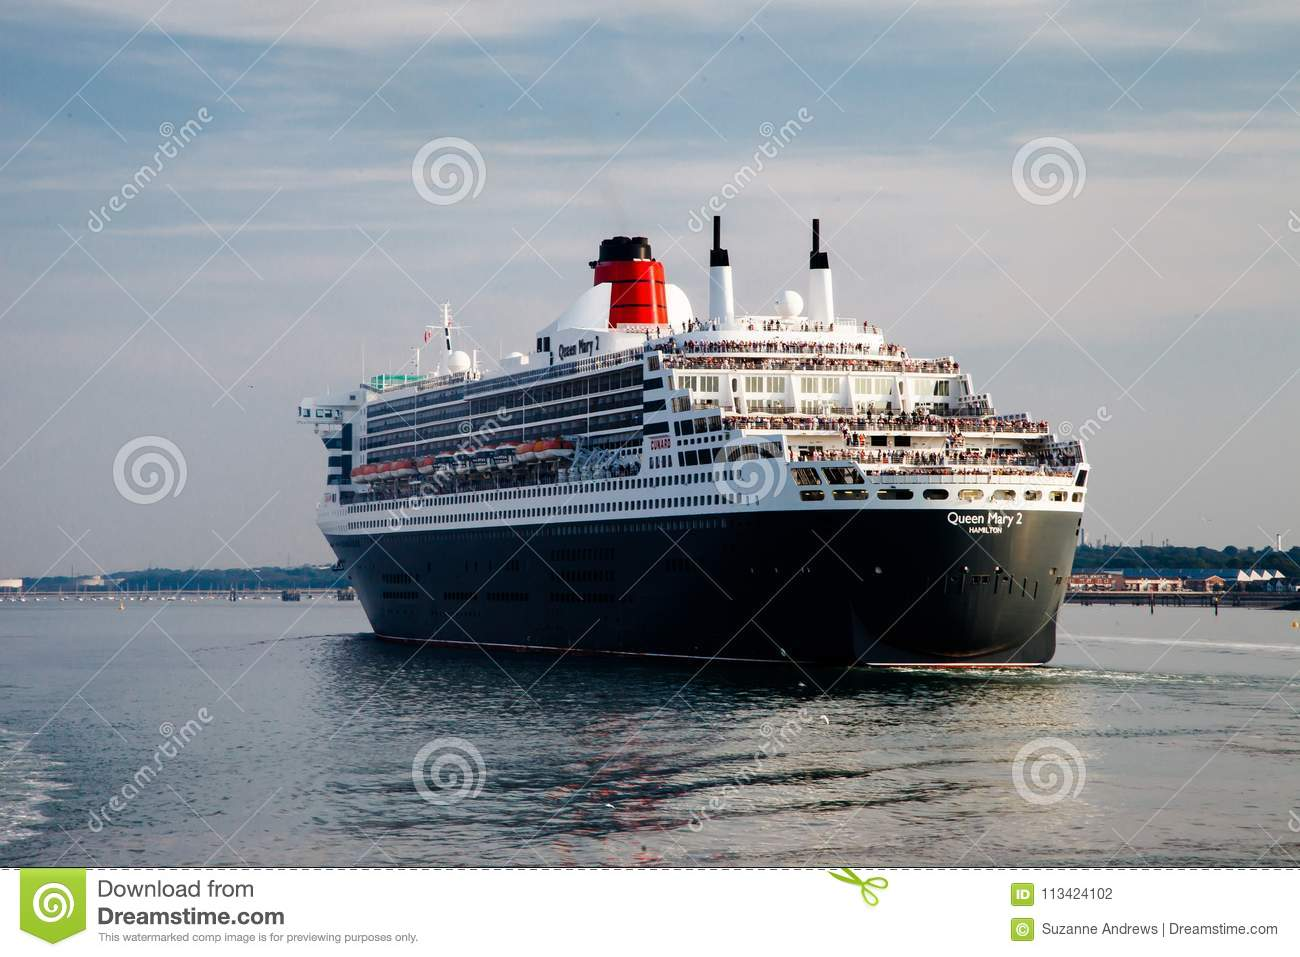 Portsmouth, Großbritannien, am 9. September 2014 - Queen Mary II-Schiff